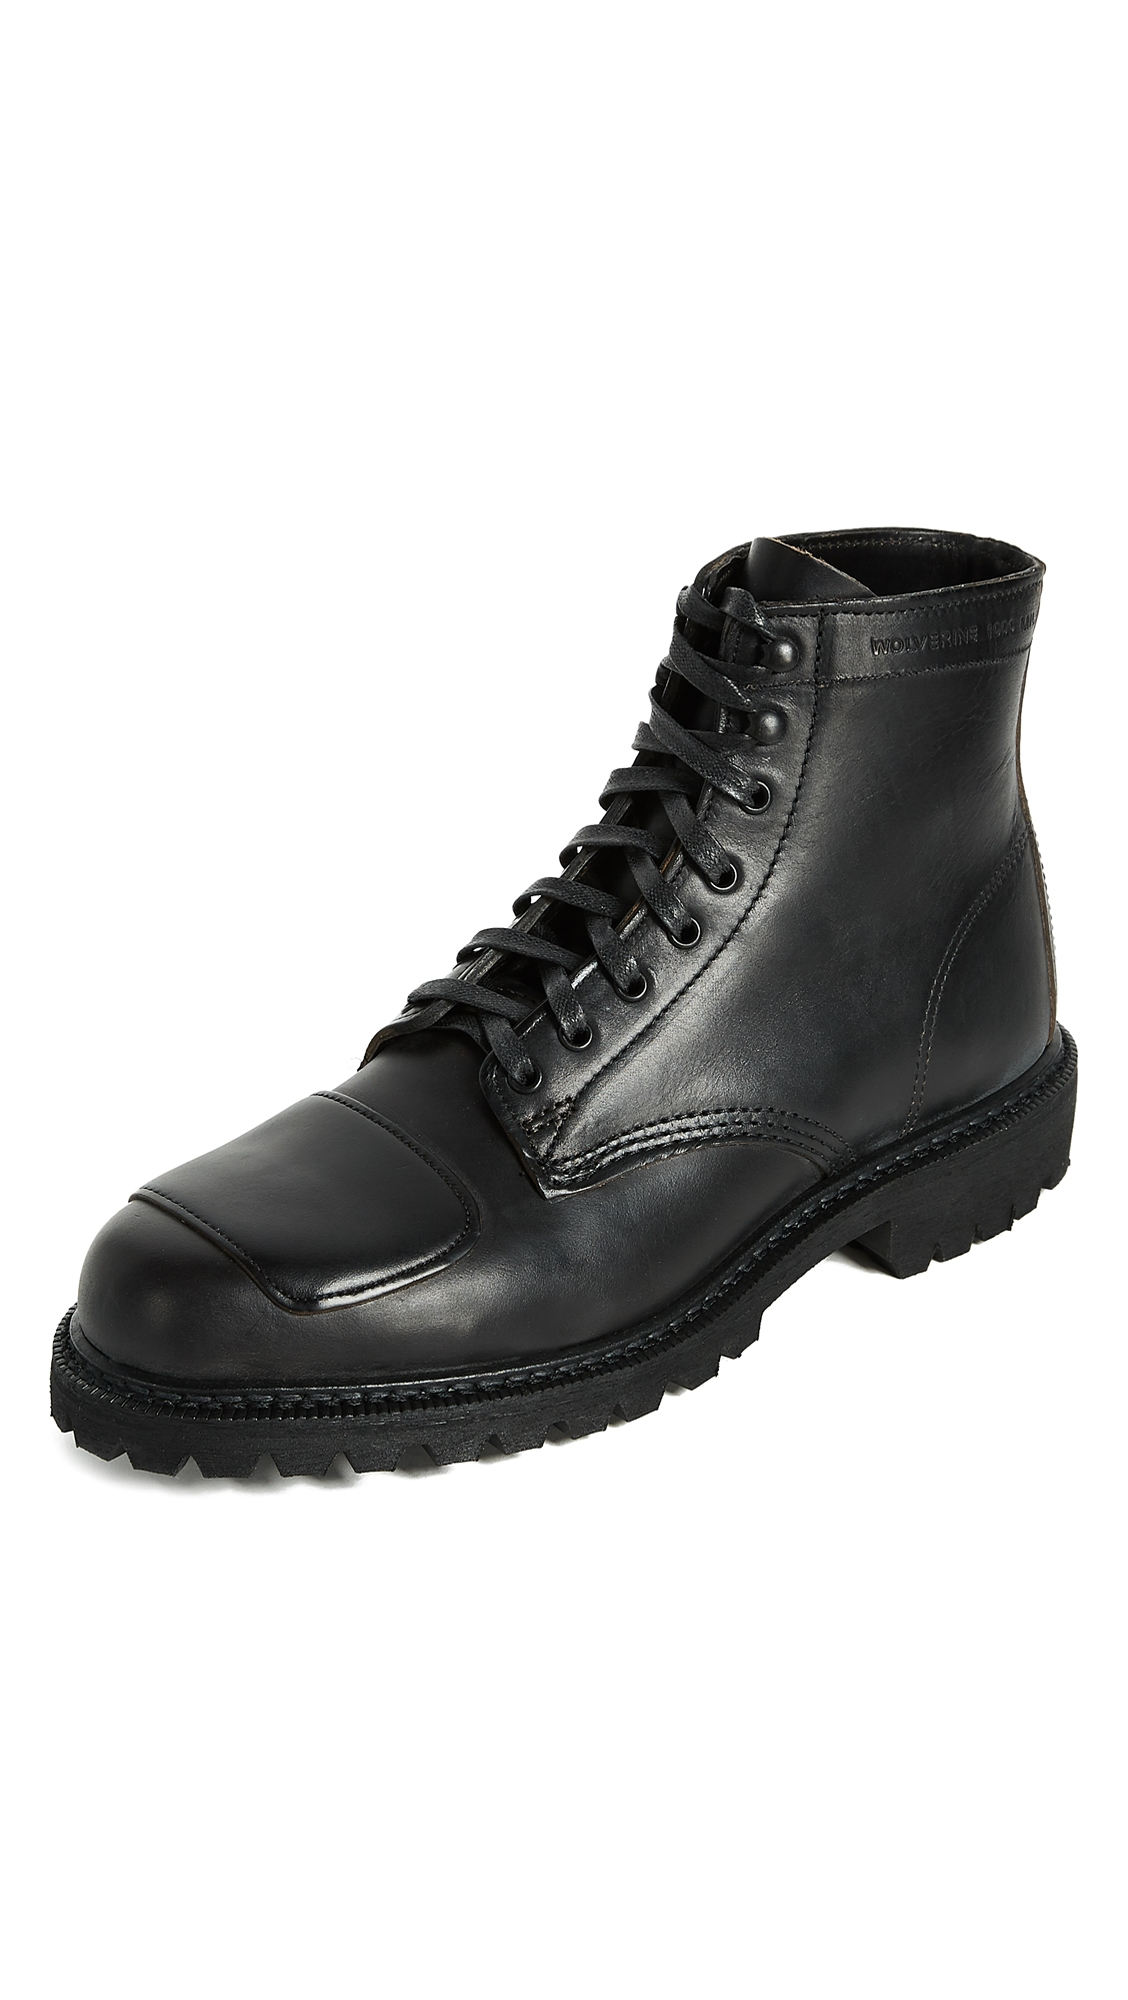 WOLVERINE 1000 MILE DYLAN MOTO BOOTS